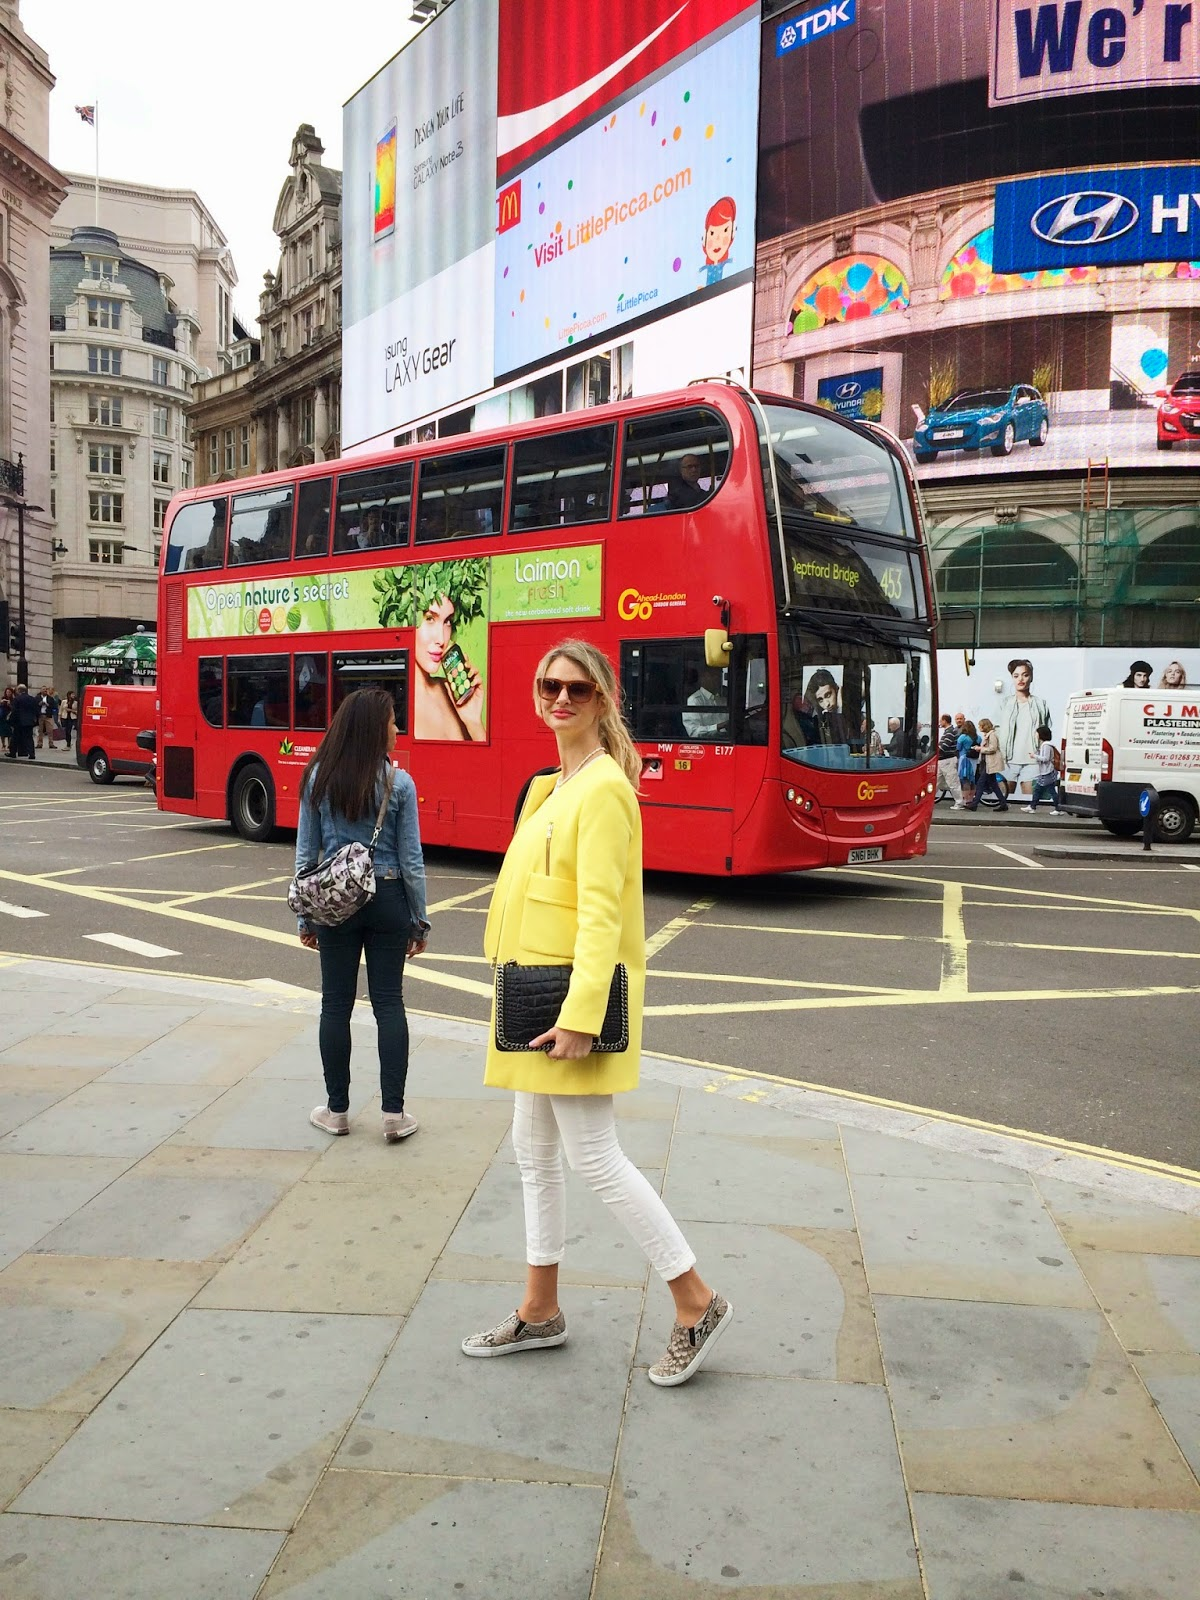 London, Piccadilly, london bus, red bus, zara coat, yellow coat, zara yellow coat, white jeans, skinny jeans white, slipons, snakeprint slipons, zara croco bag, london fashion blogger, london street style